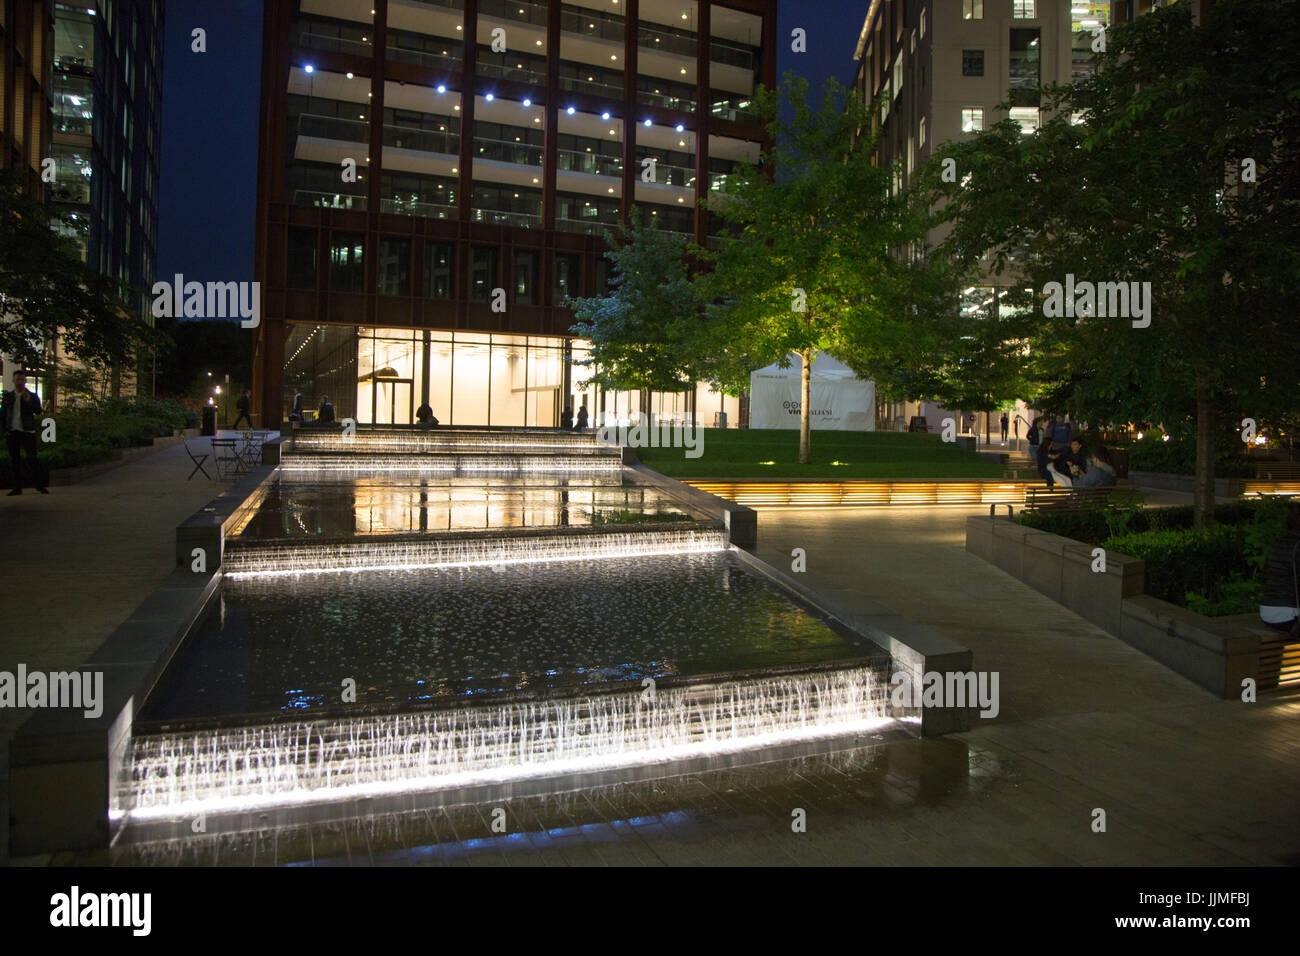 Pancras Square at night, north of King's Cross Station with water feature - Stock Image